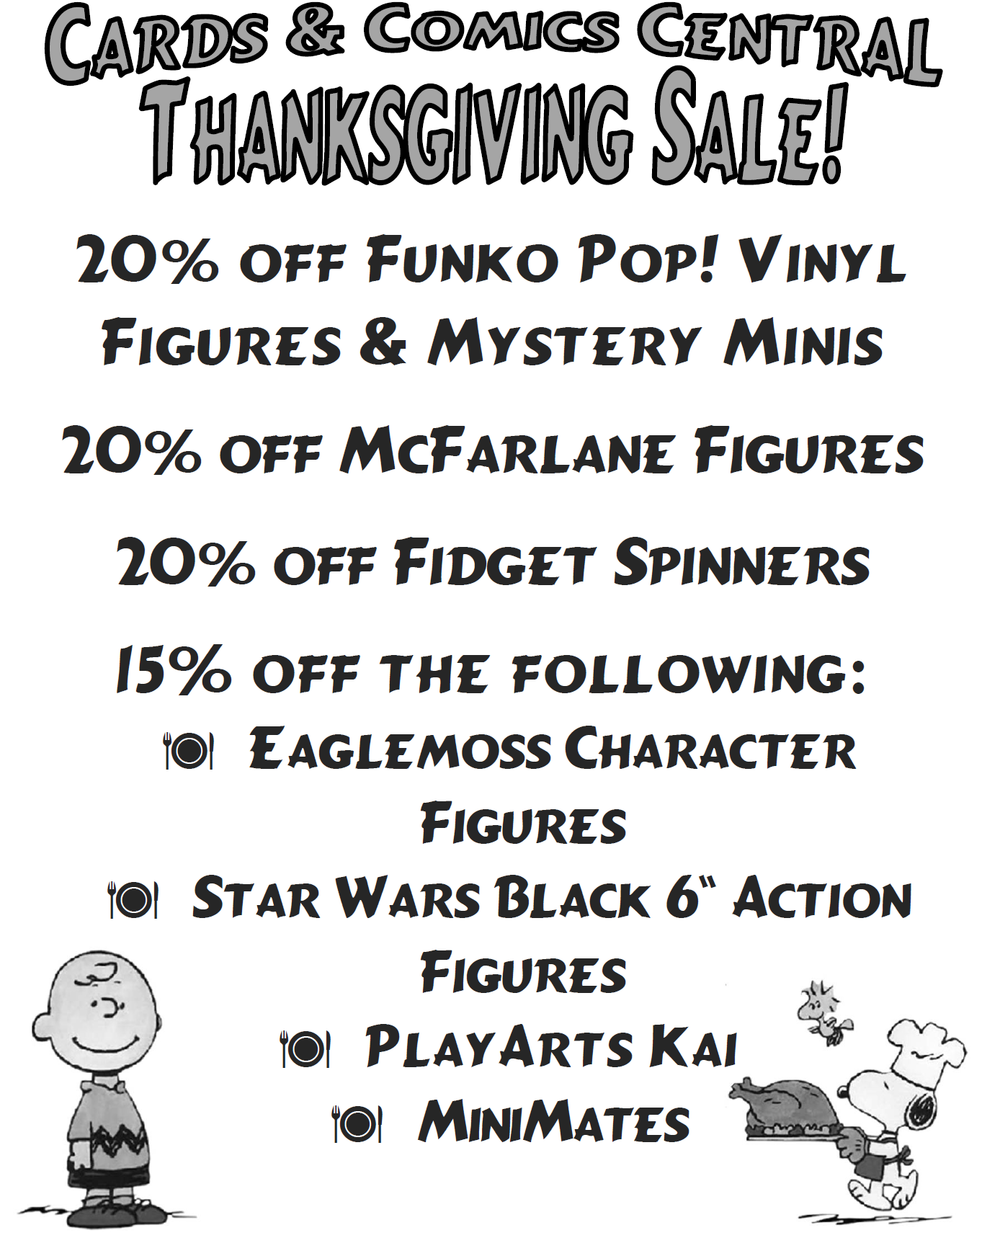 ThanksgivingSale_TOYS.png